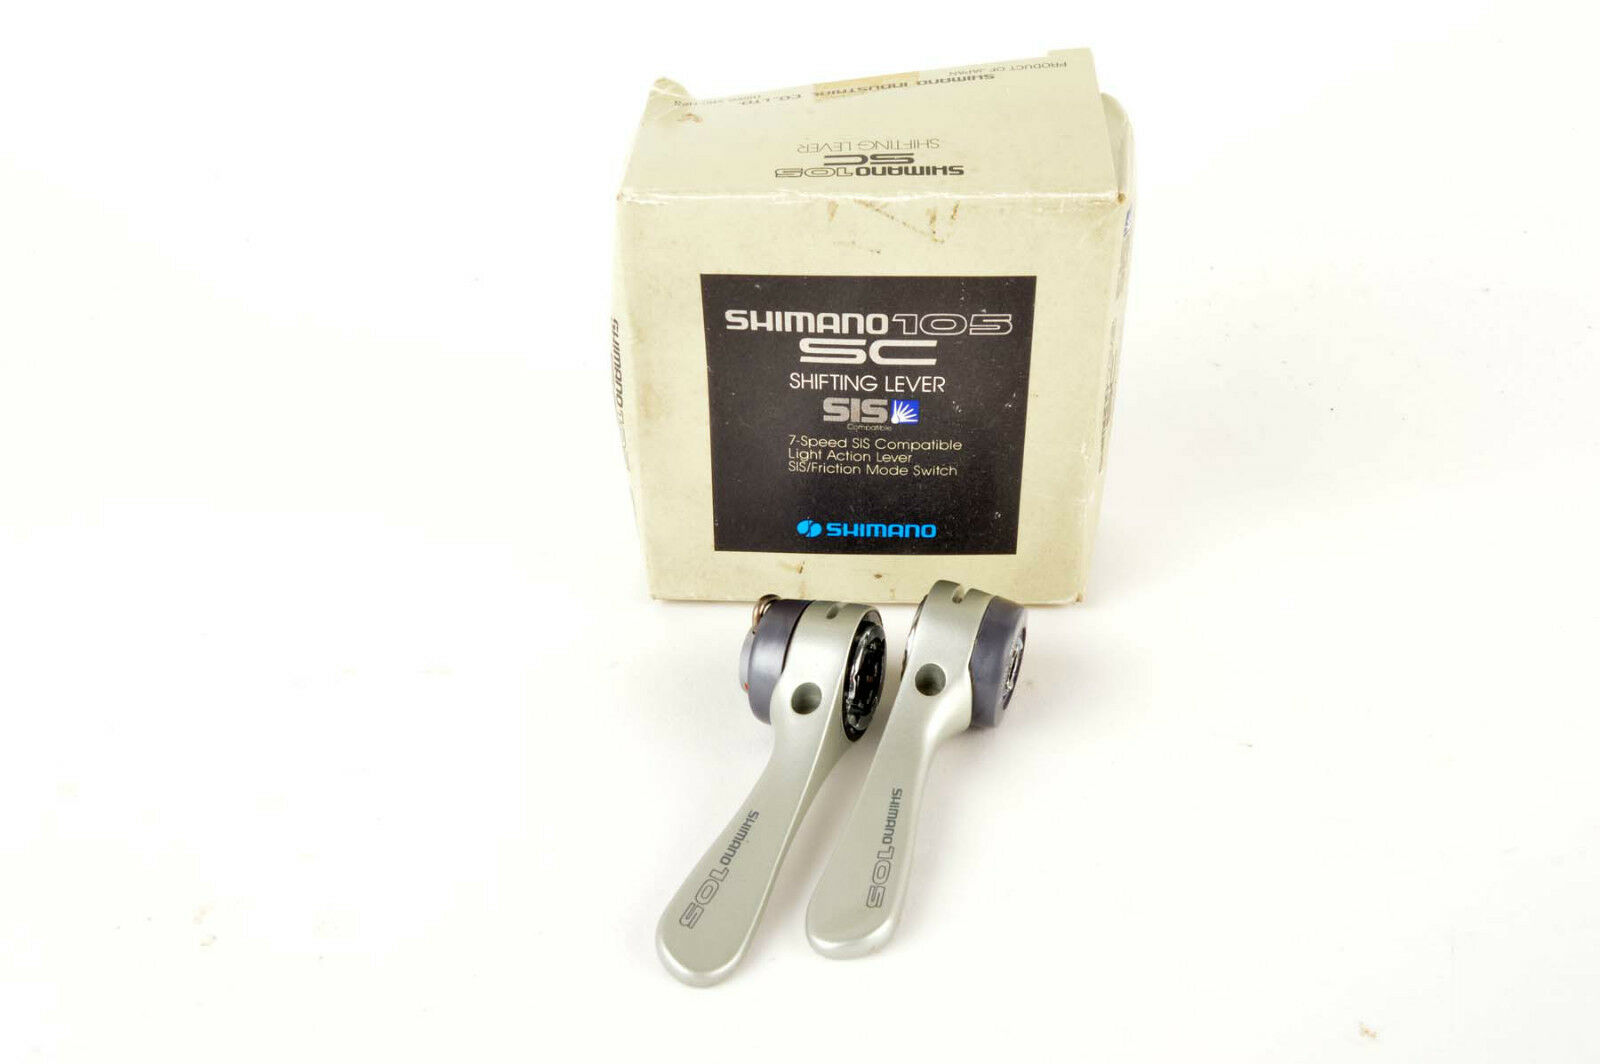 NEW Shimano 105  SL-1055 7 speed braze-on shifters from 1990 NOS NIB